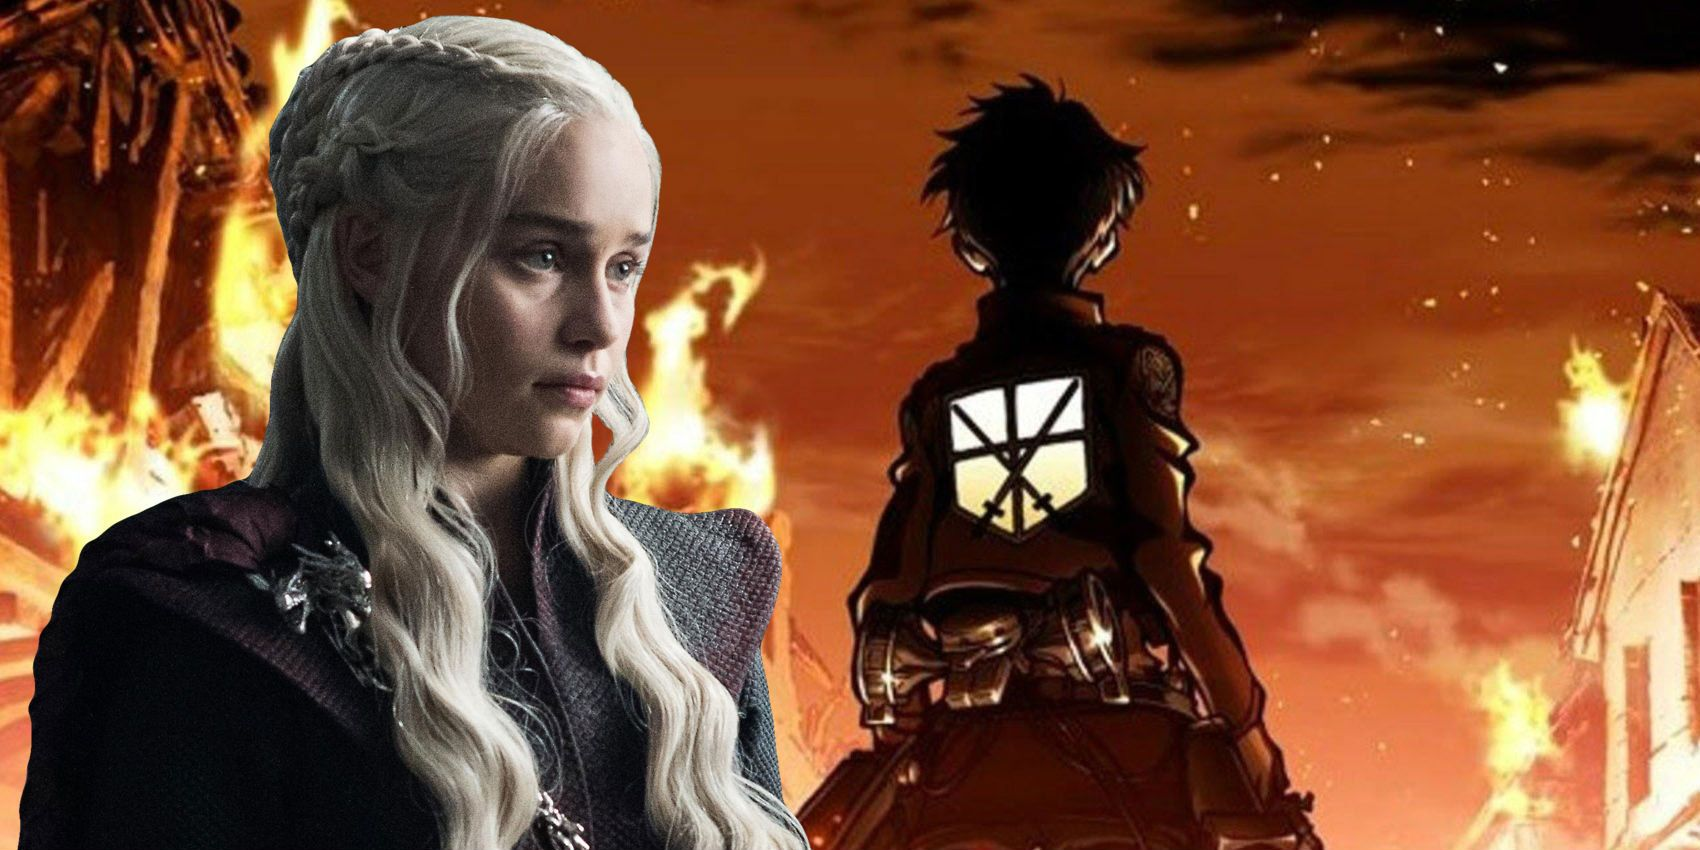 Attack on Titan is Making the Same Mistake as Game of Thrones